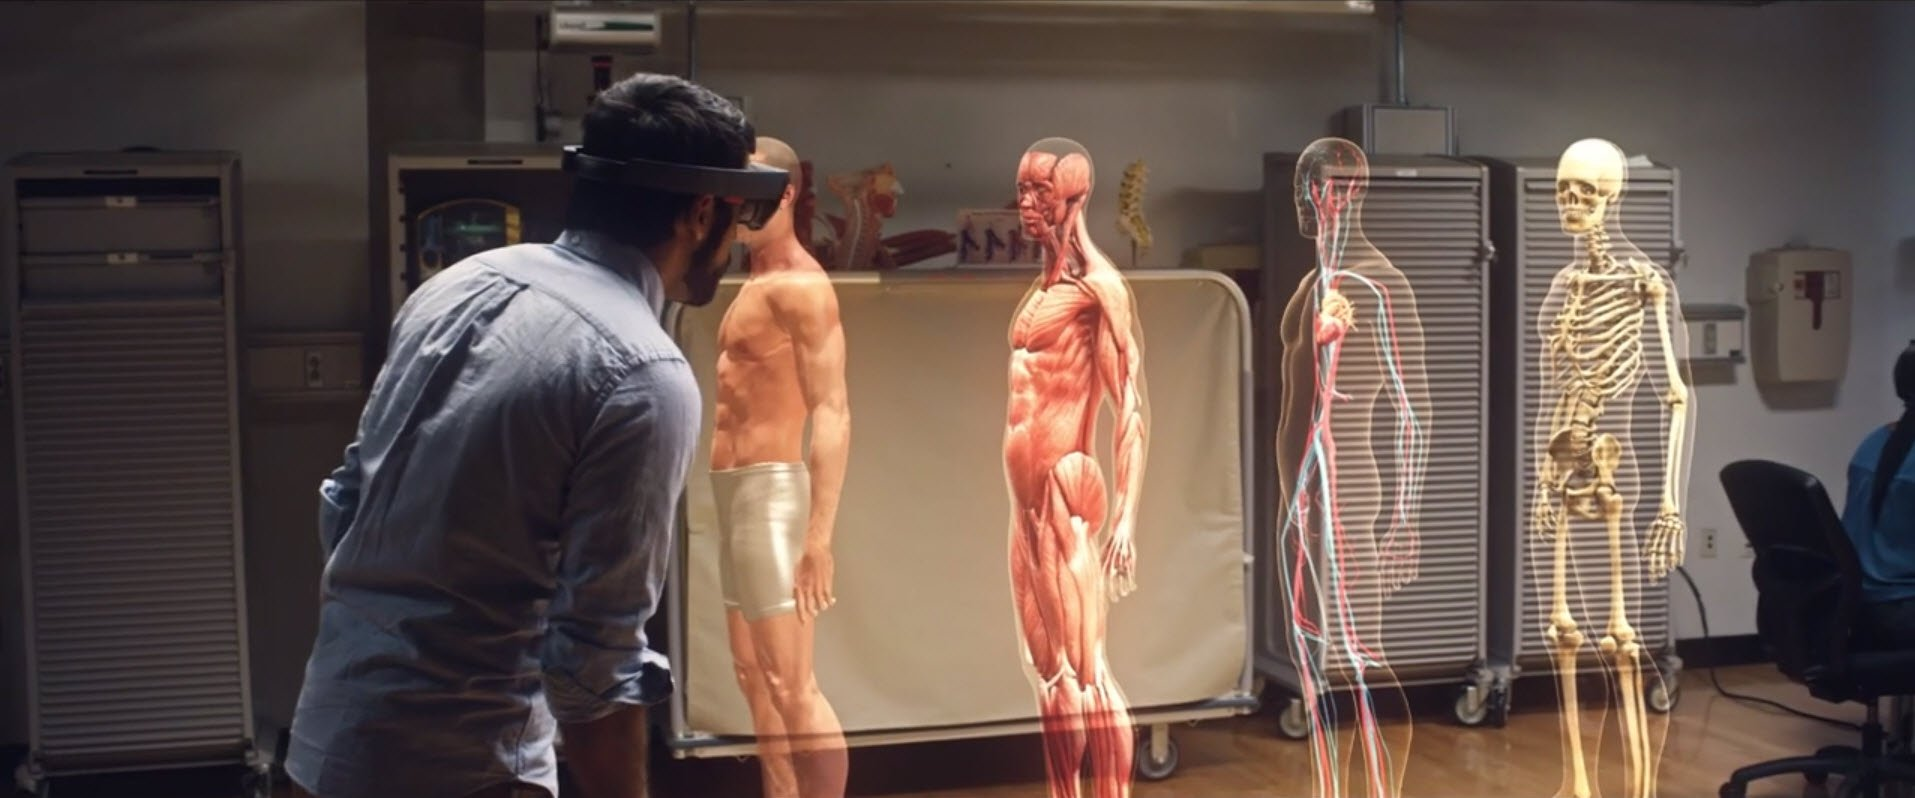 New HoloLens details revealed, including battery life and FOV experience